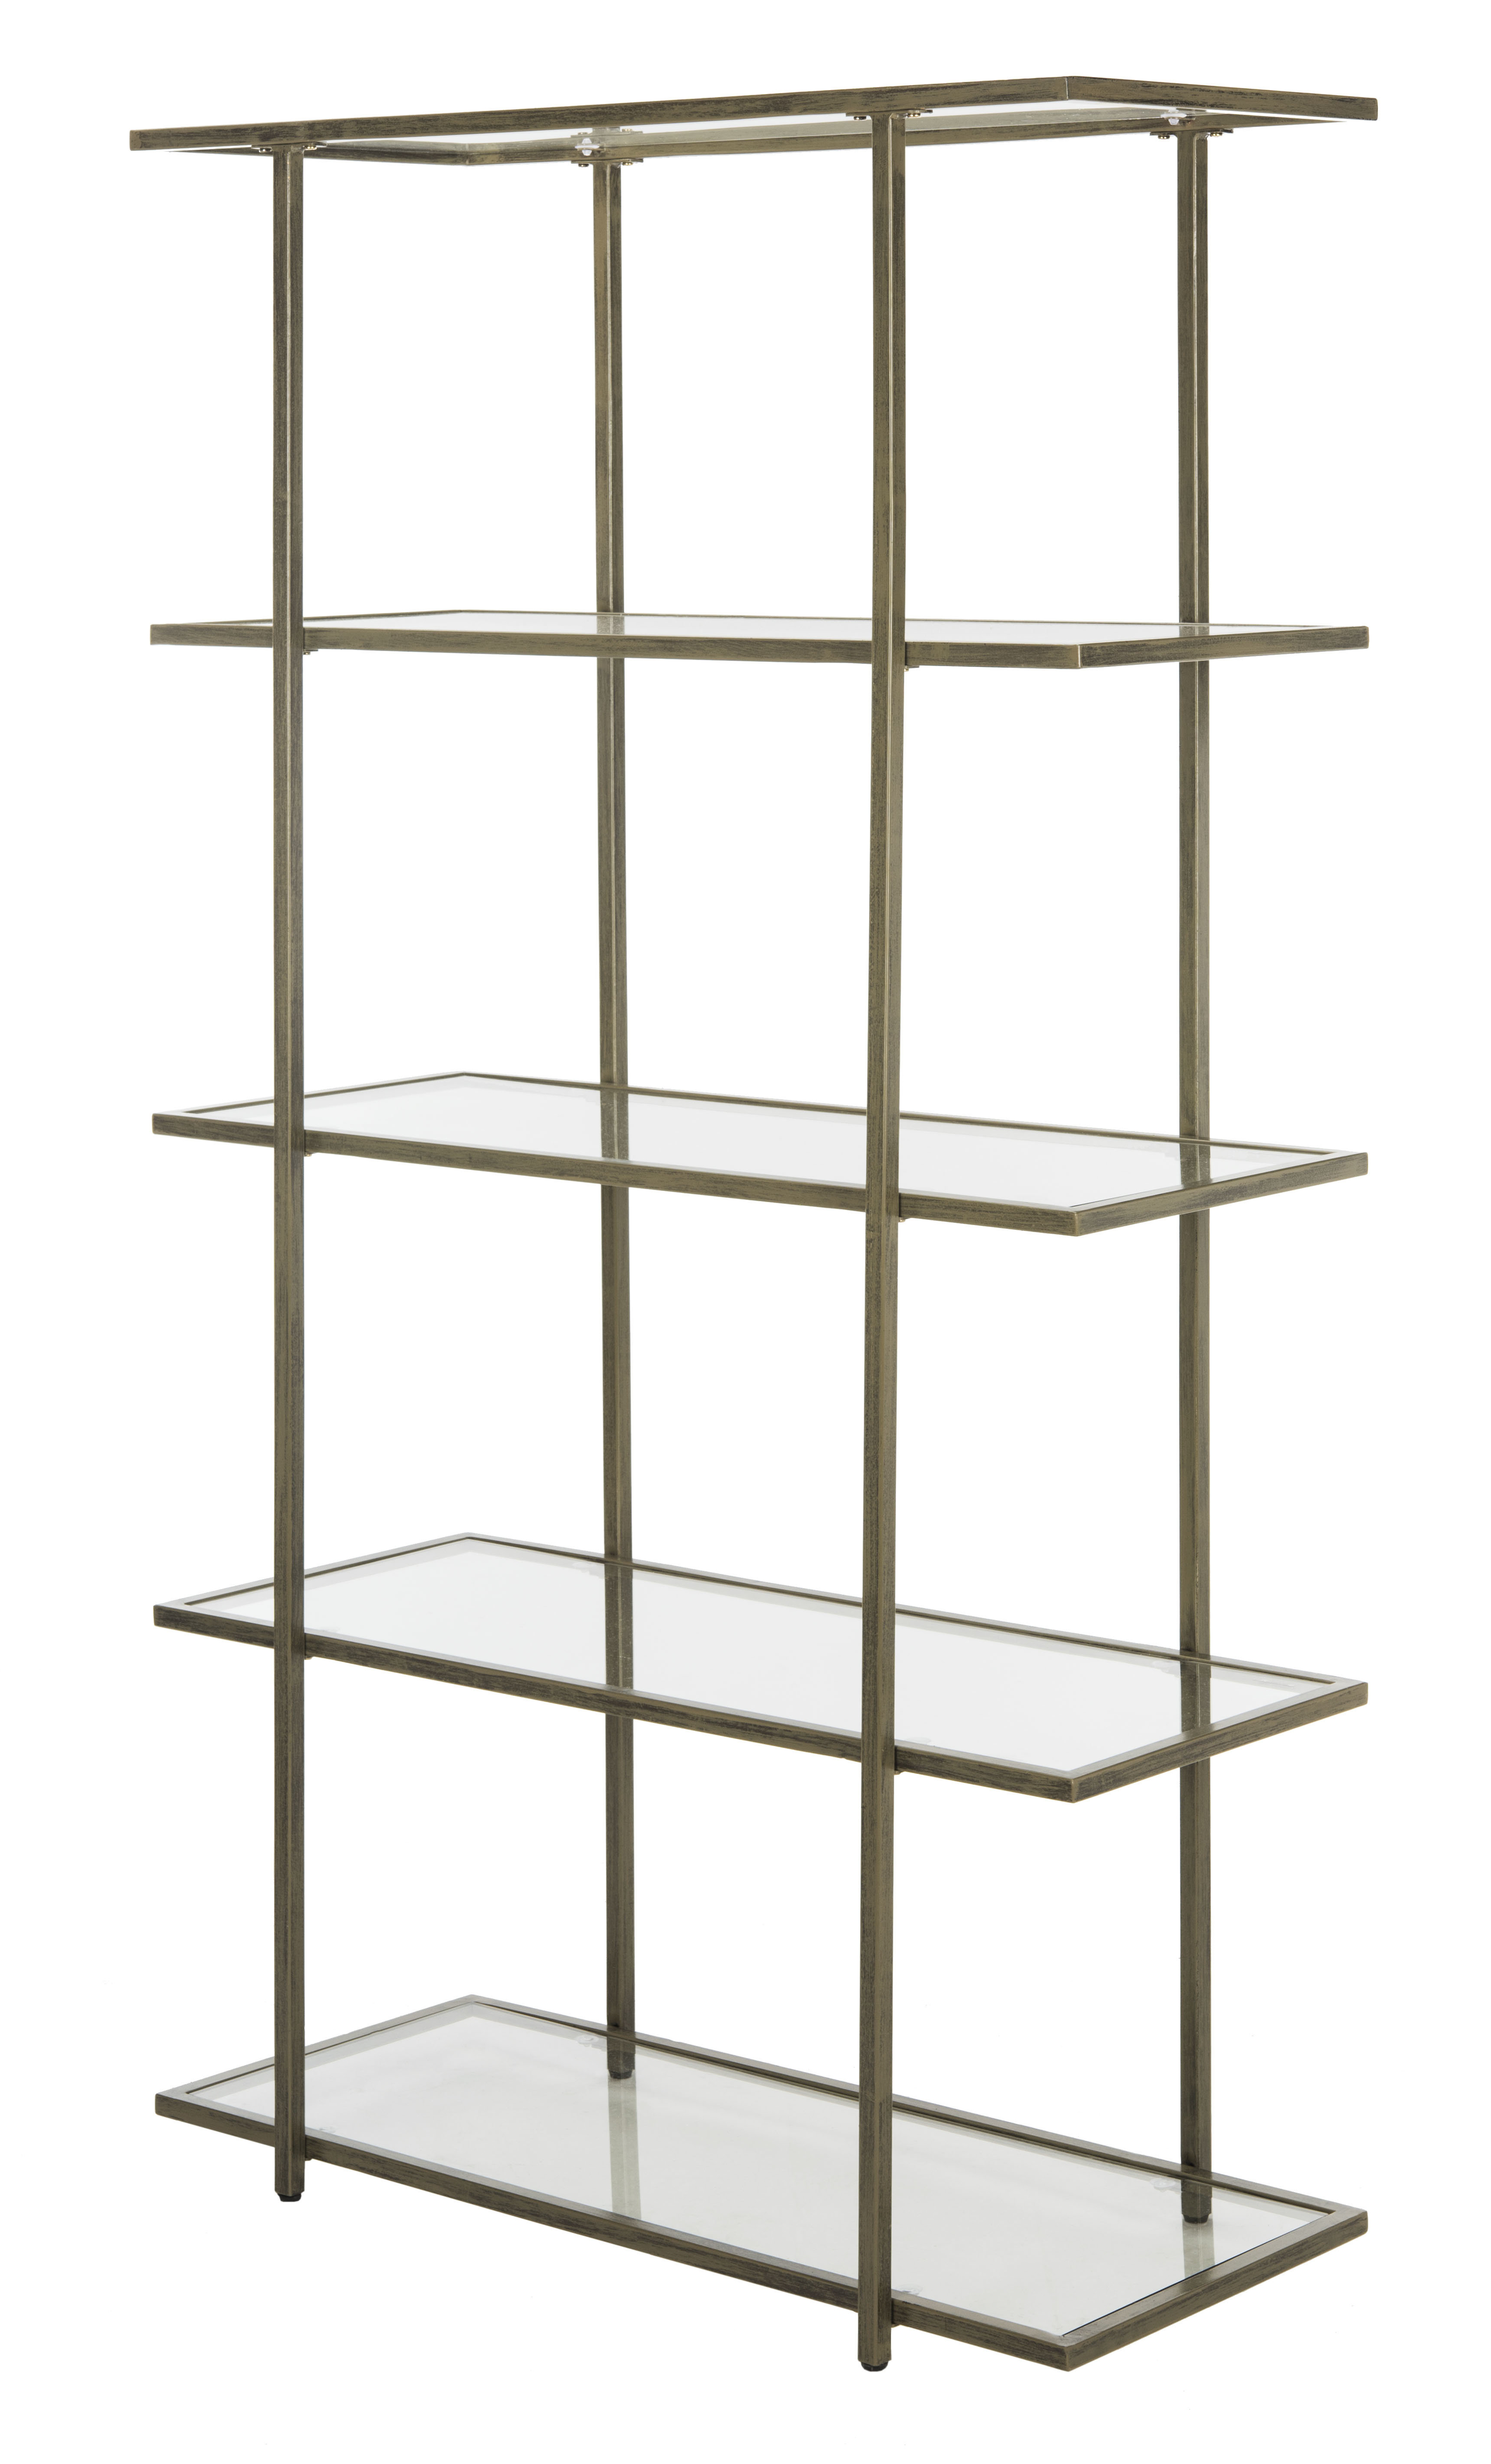 Blairs Etagere Bookcases With Regard To Recent Mercury Row Farrand Etagere Bookcase (View 7 of 20)